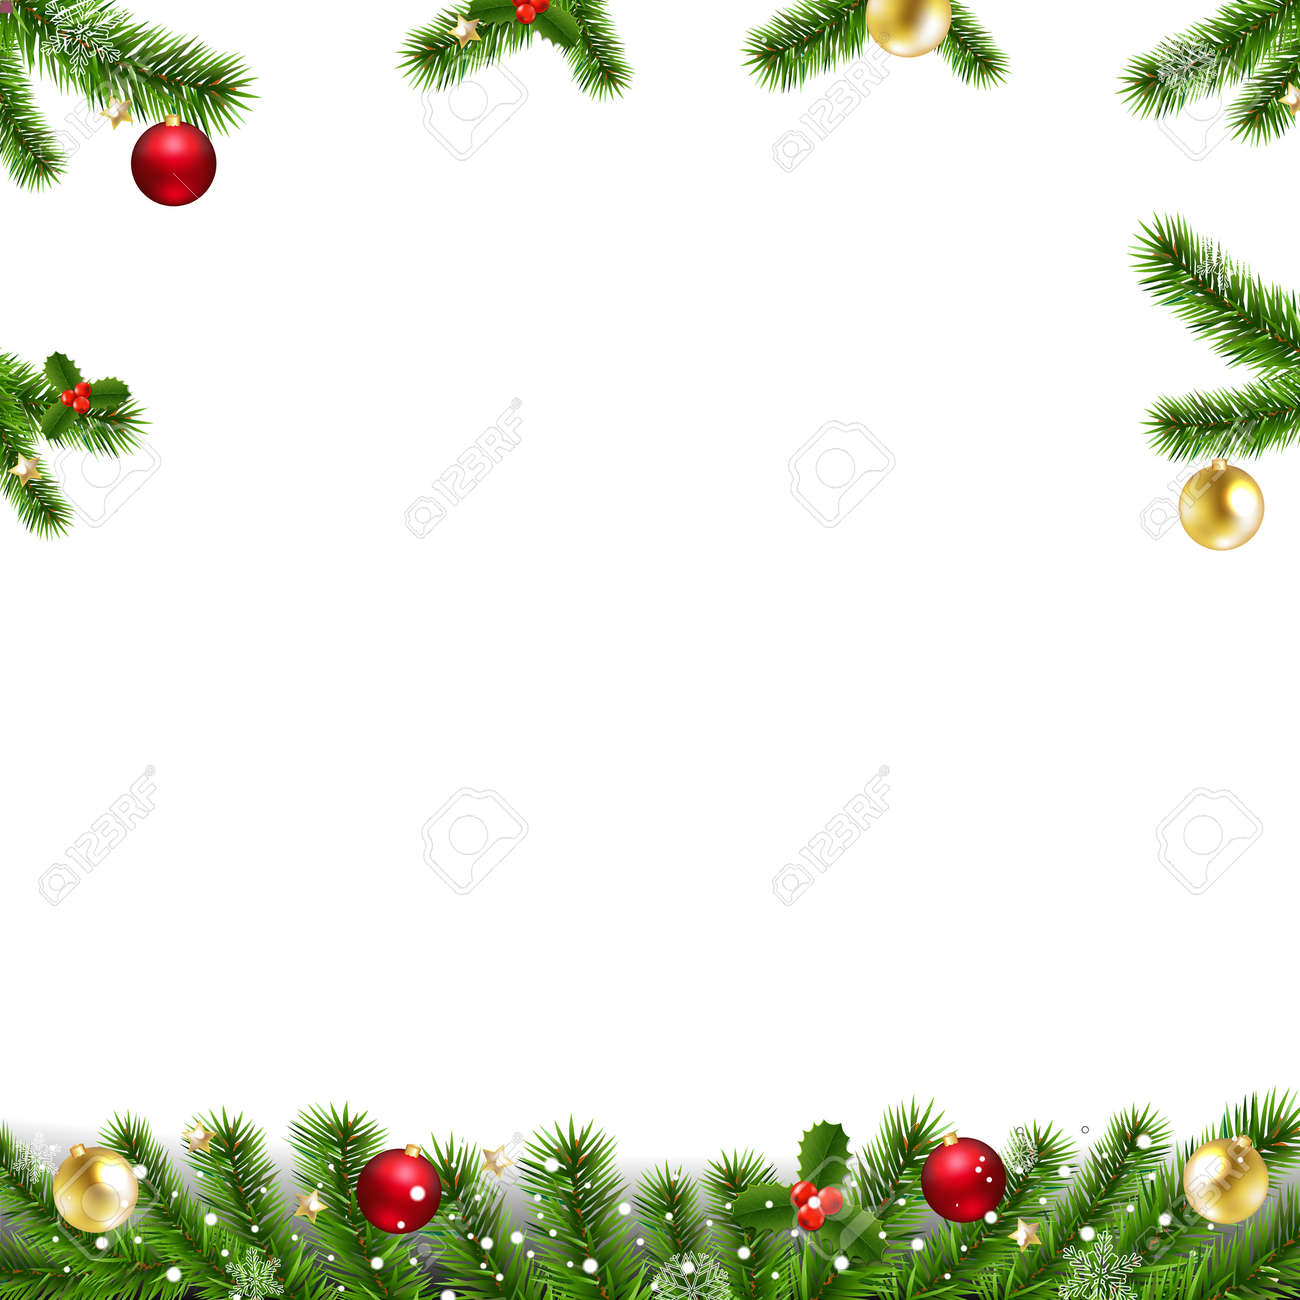 Xmas Garlands With Fir Tree And Christmas Toys With Gradient Mesh, Vector Illustration - 126893689